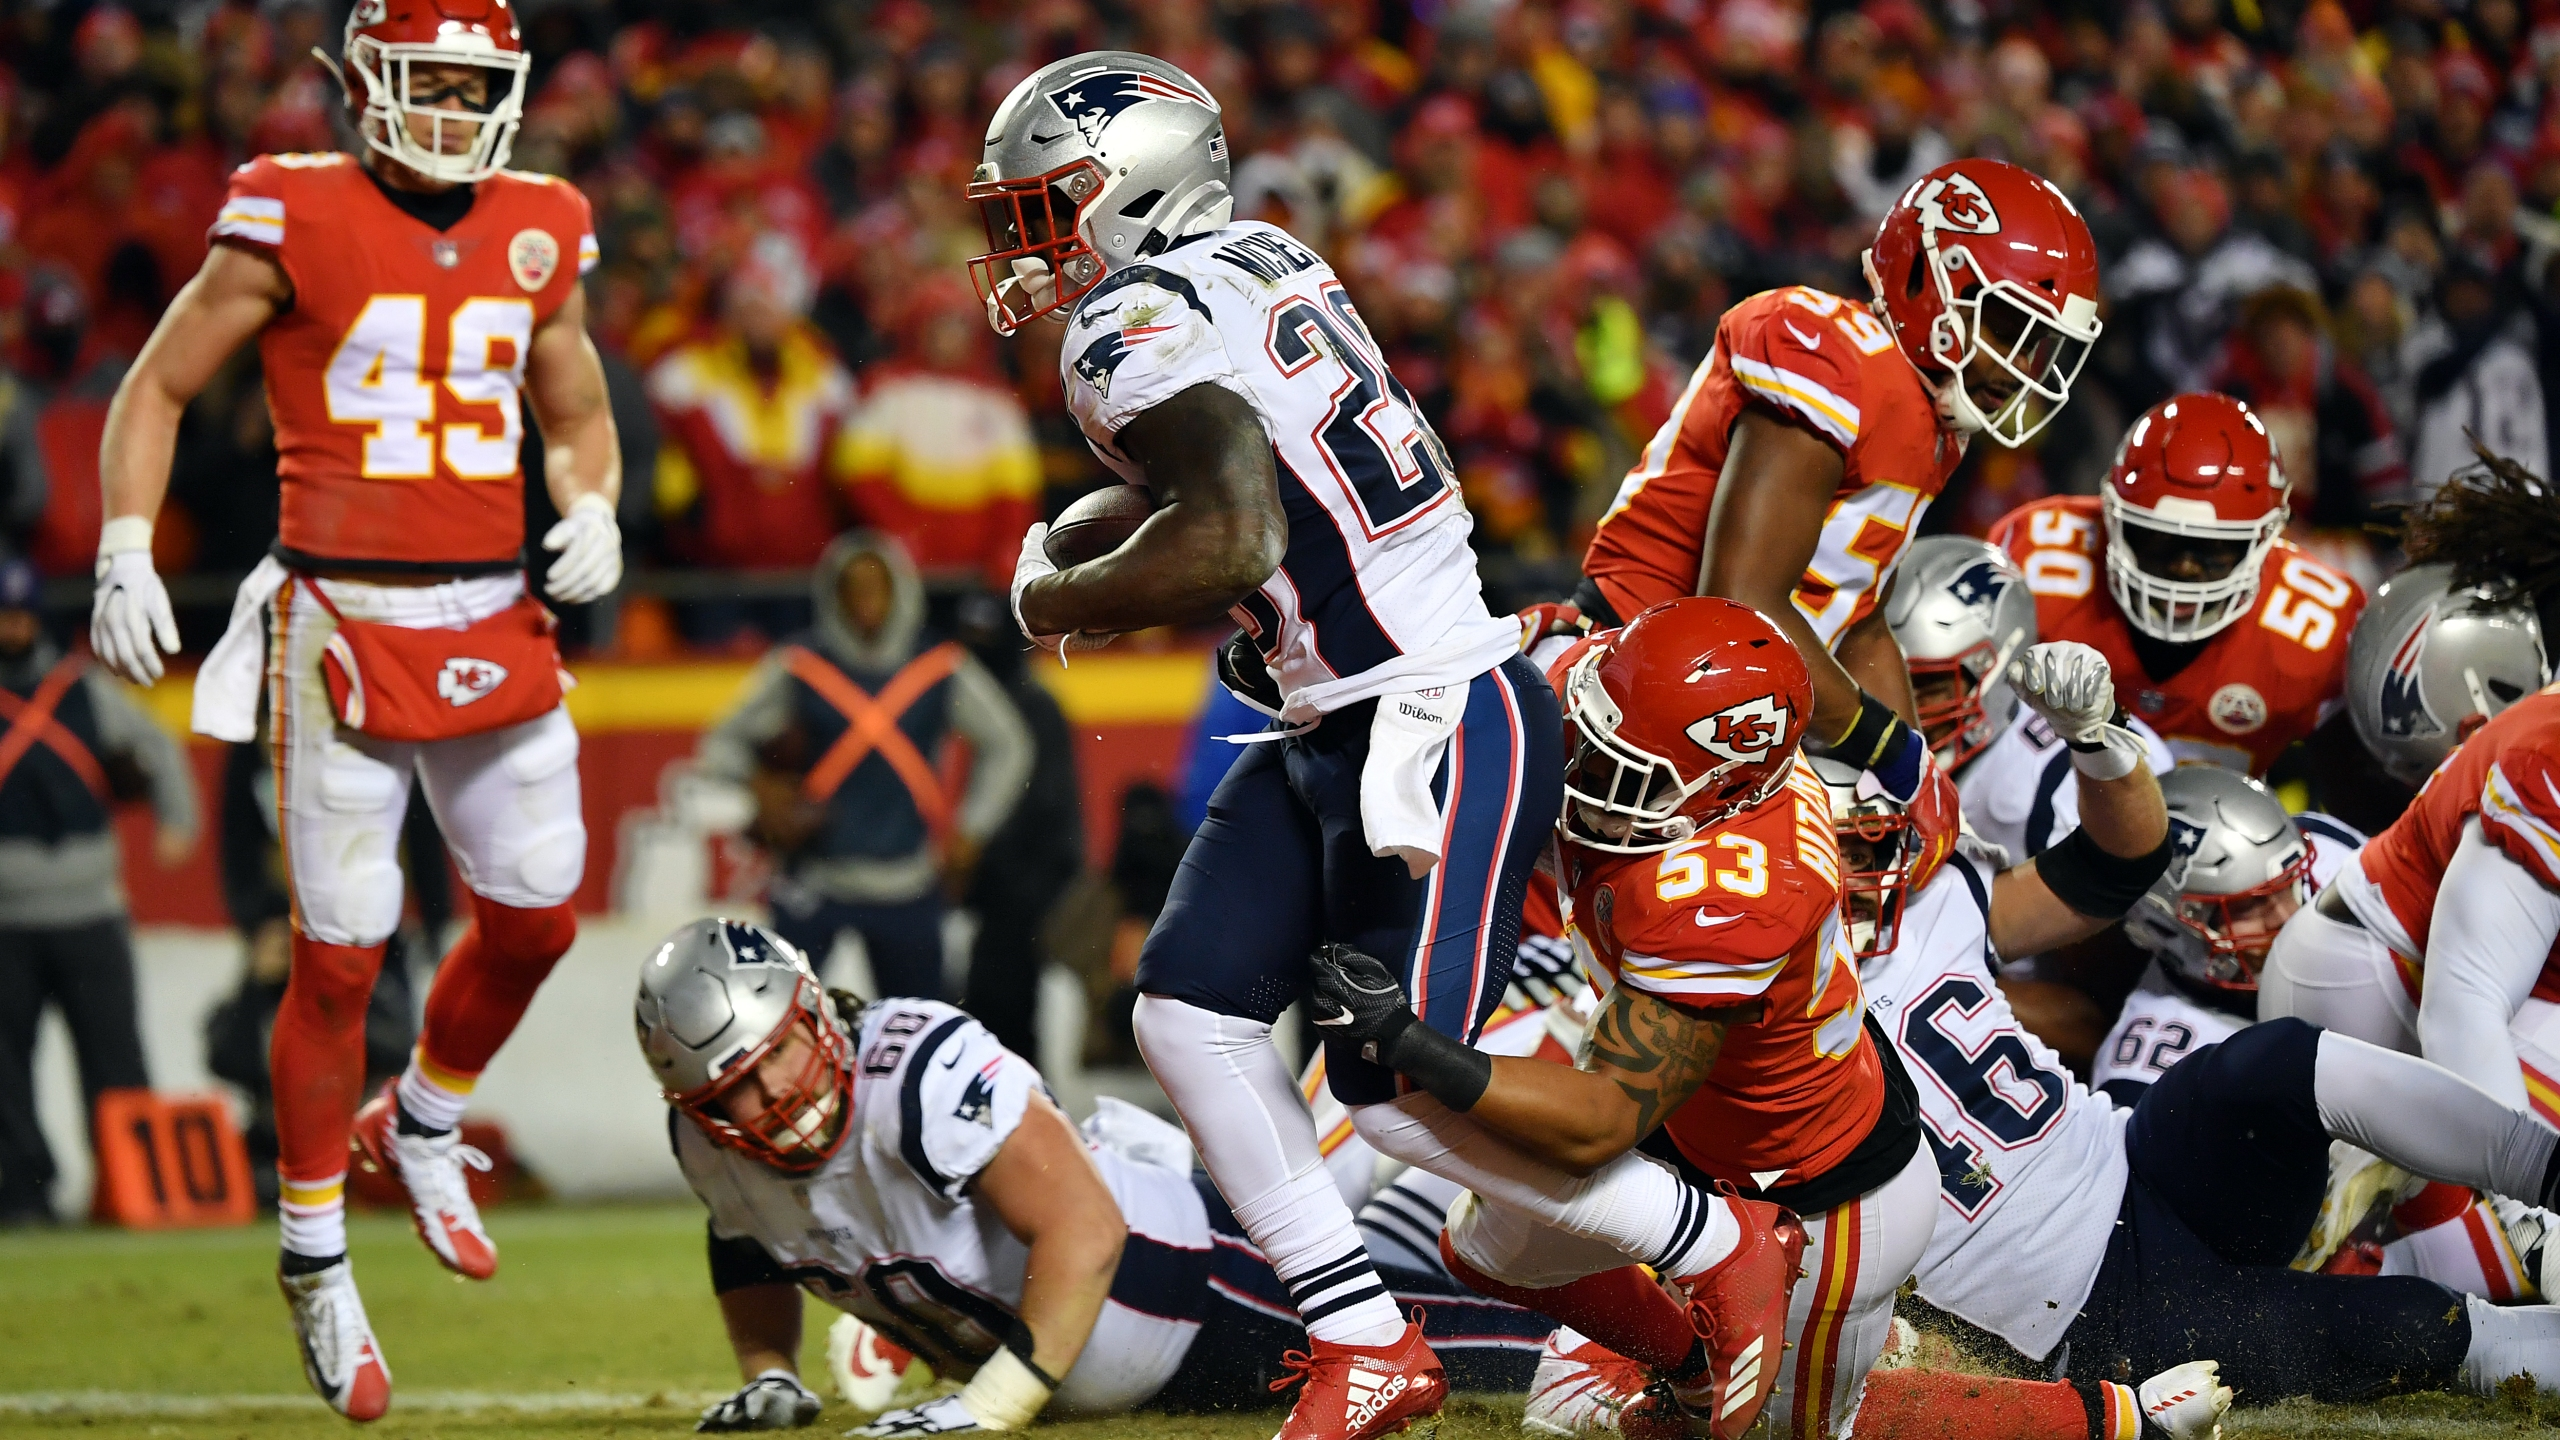 Sony Michel #26 of the New England Patriots rushes for a 1-yard touchdown in the first quarter against the Kansas City Chiefs during the AFC Championship Game at Arrowhead Stadium on January 20, 2019 in Kansas City, Missouri. (Credit: Peter Aiken/Getty Images)